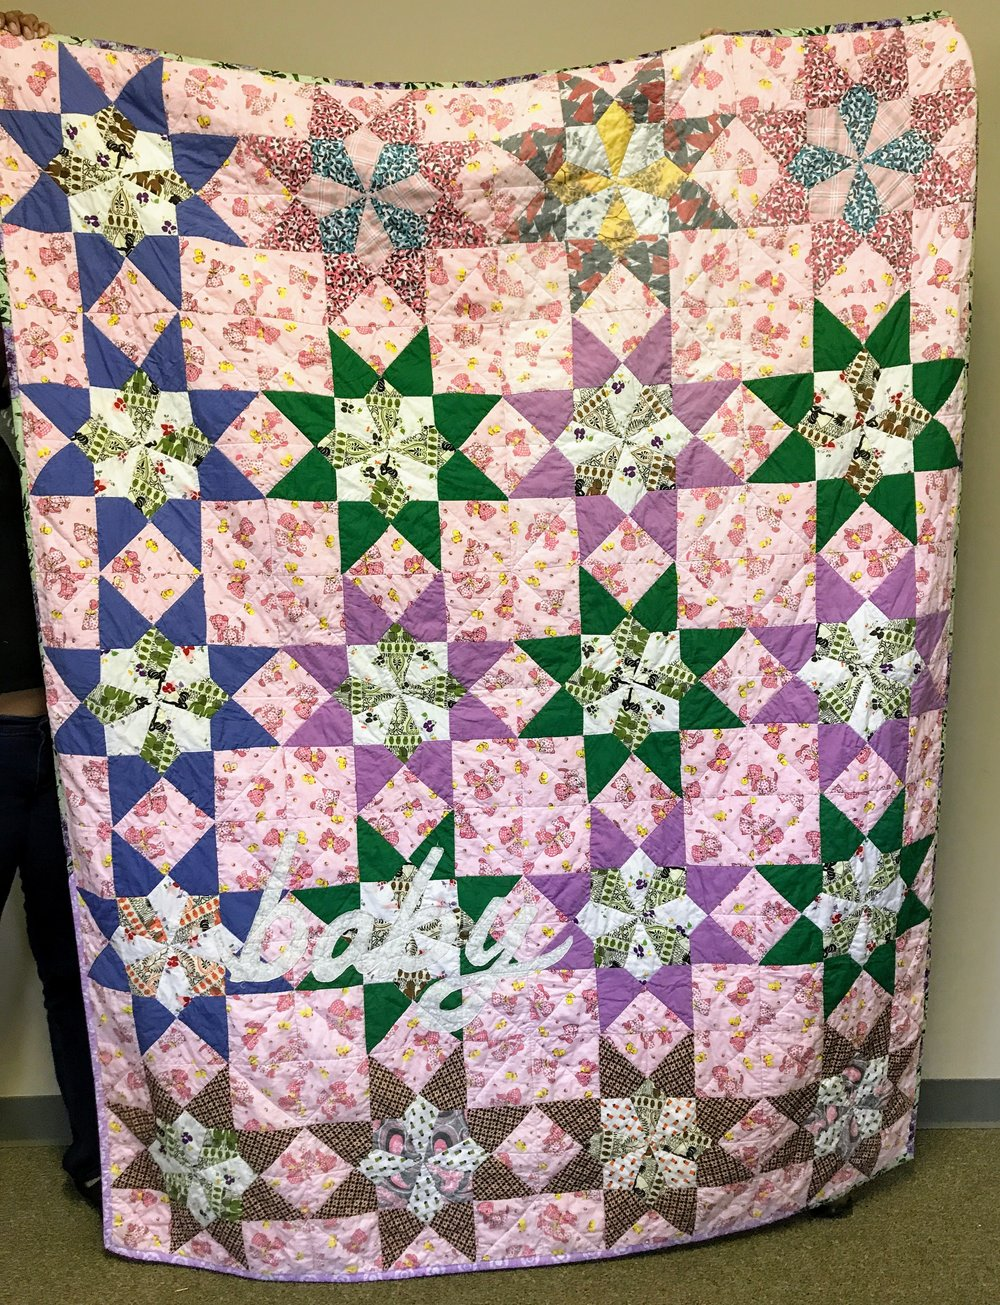 Sherry spruced up this vintage quilt top